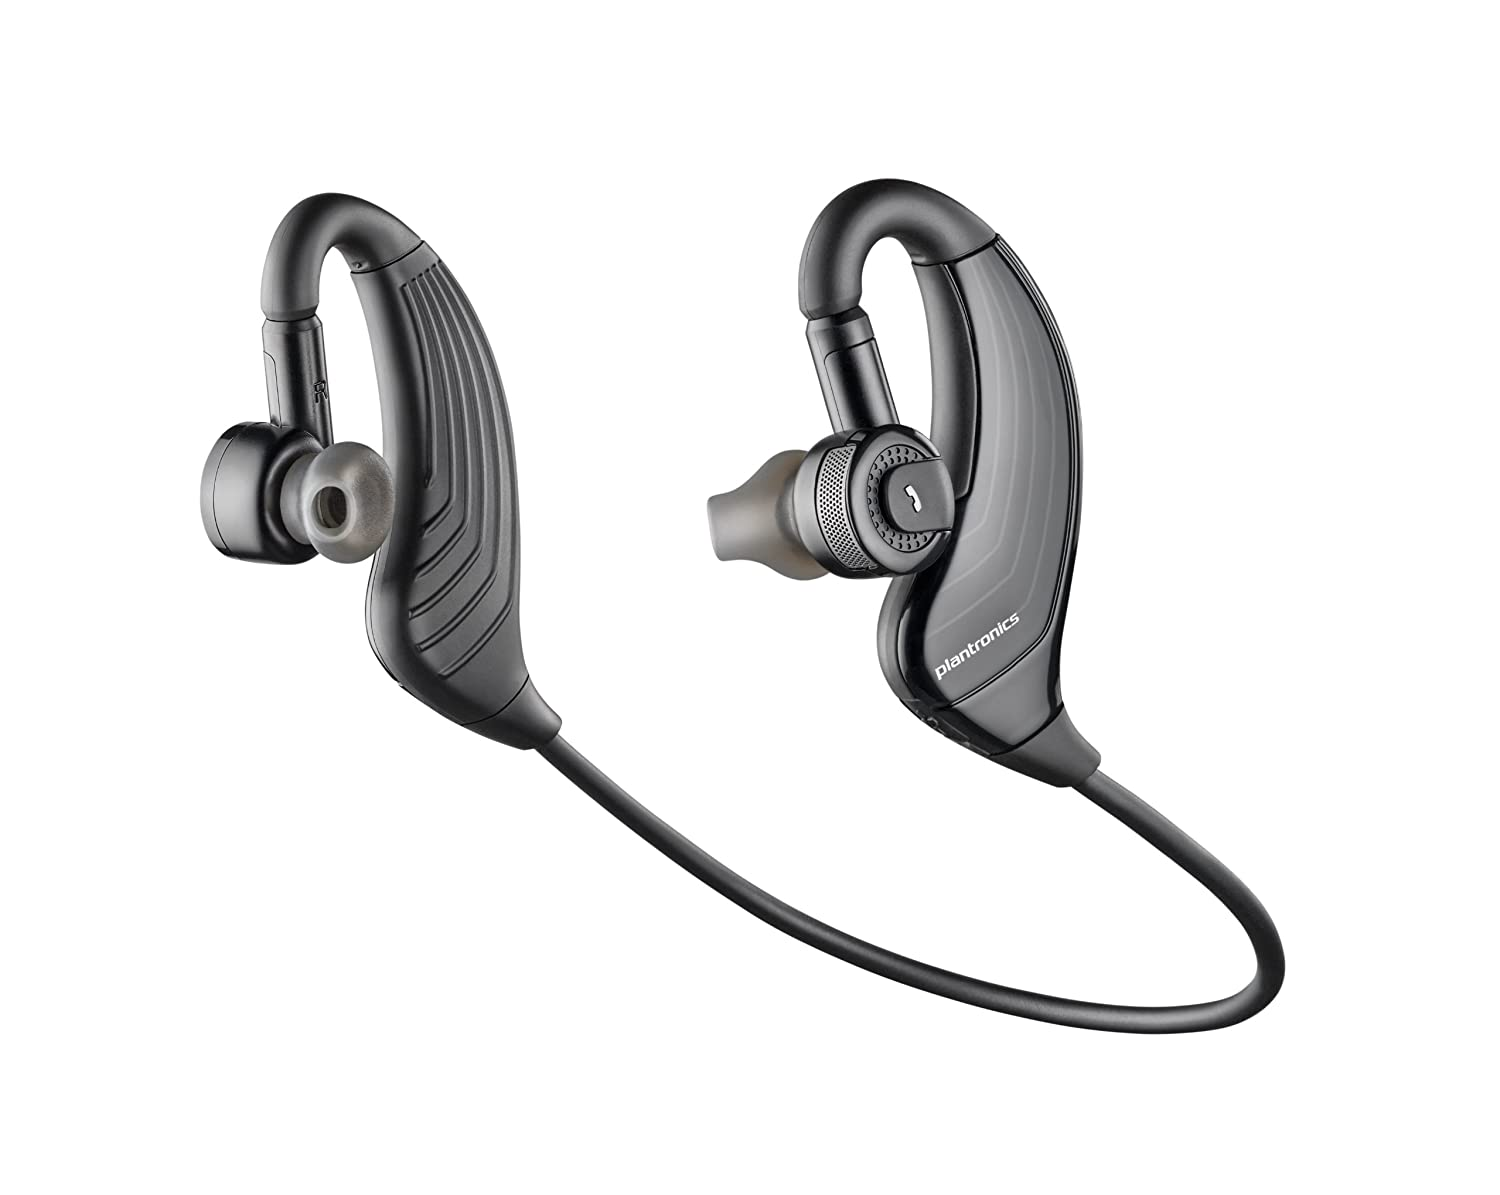 Amazon.com: Plantronics BackBeat 903+ Wireless Headphones with Mic -  Compatible with iPhone, iPad, Android, and Other Smart Devices: Cell Phones  & ...